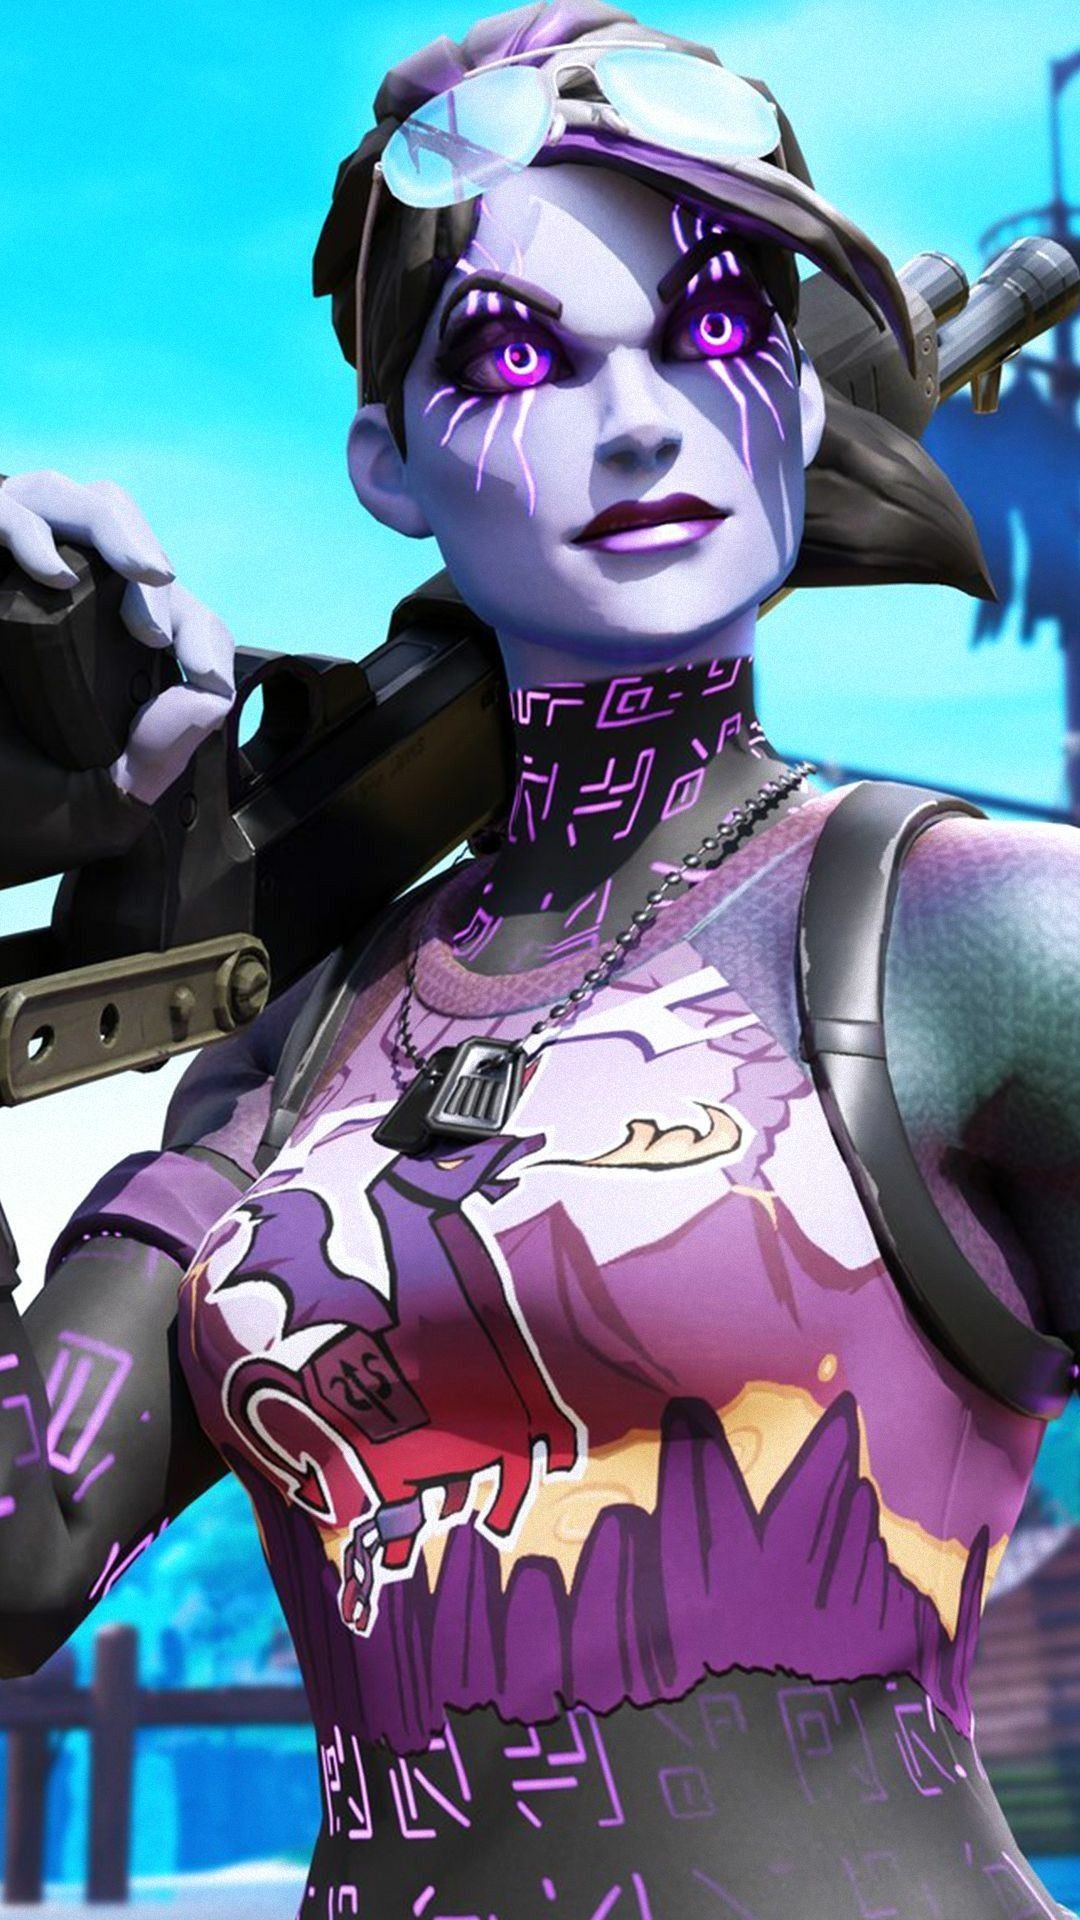 Dark Bomber Fortnite Skin Wallpaper Gaming Wallpapers Best Gaming Wallpapers Gamer Pics